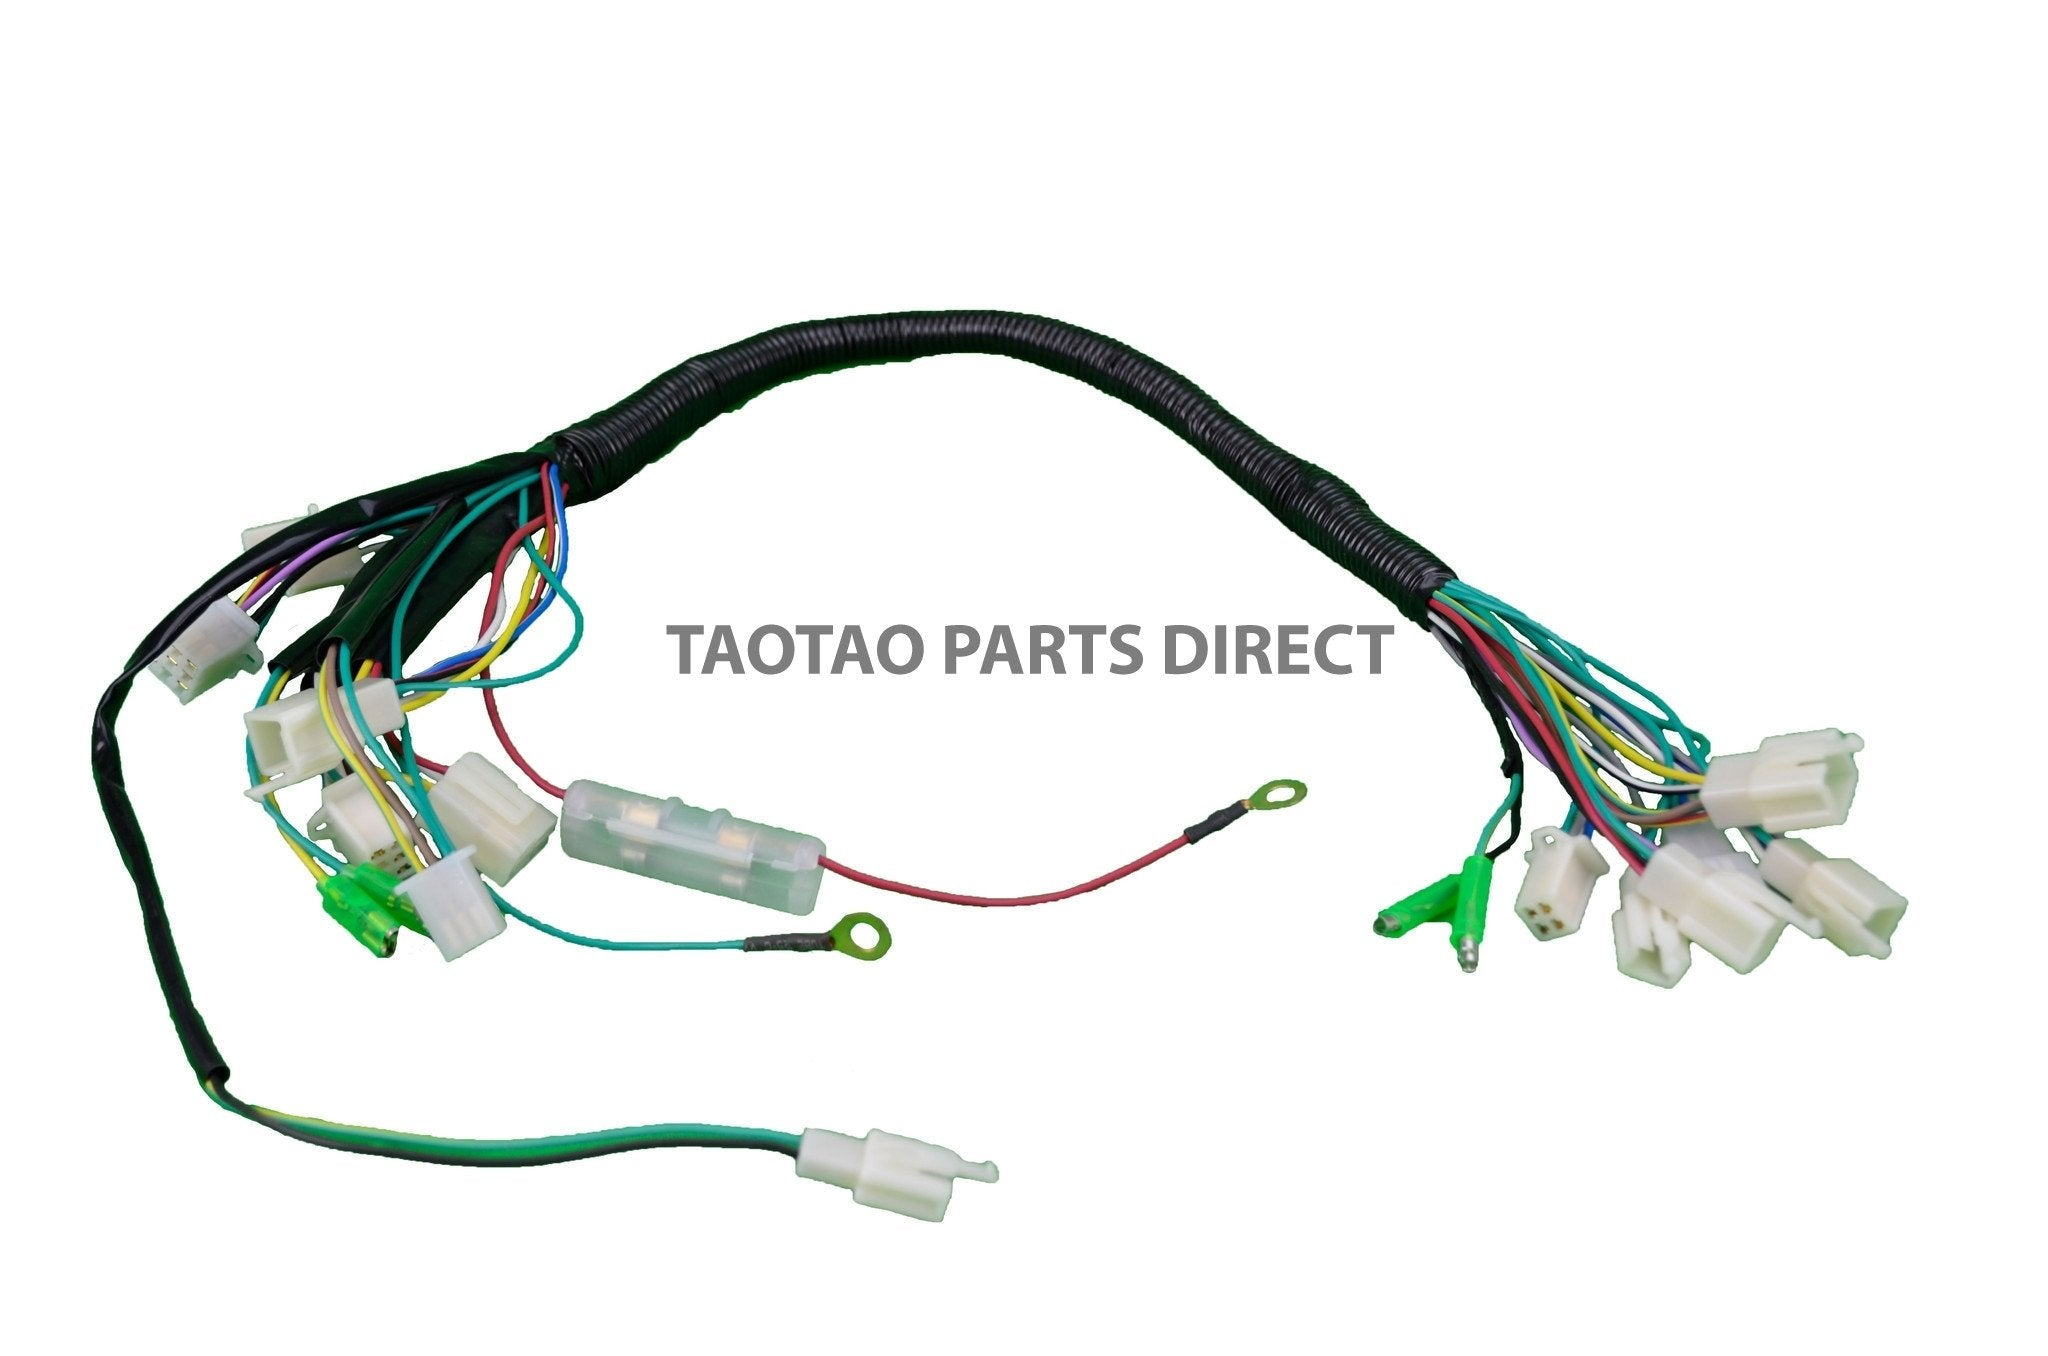 ATA110B Wire Harness #8 - TaoTao Parts Direct